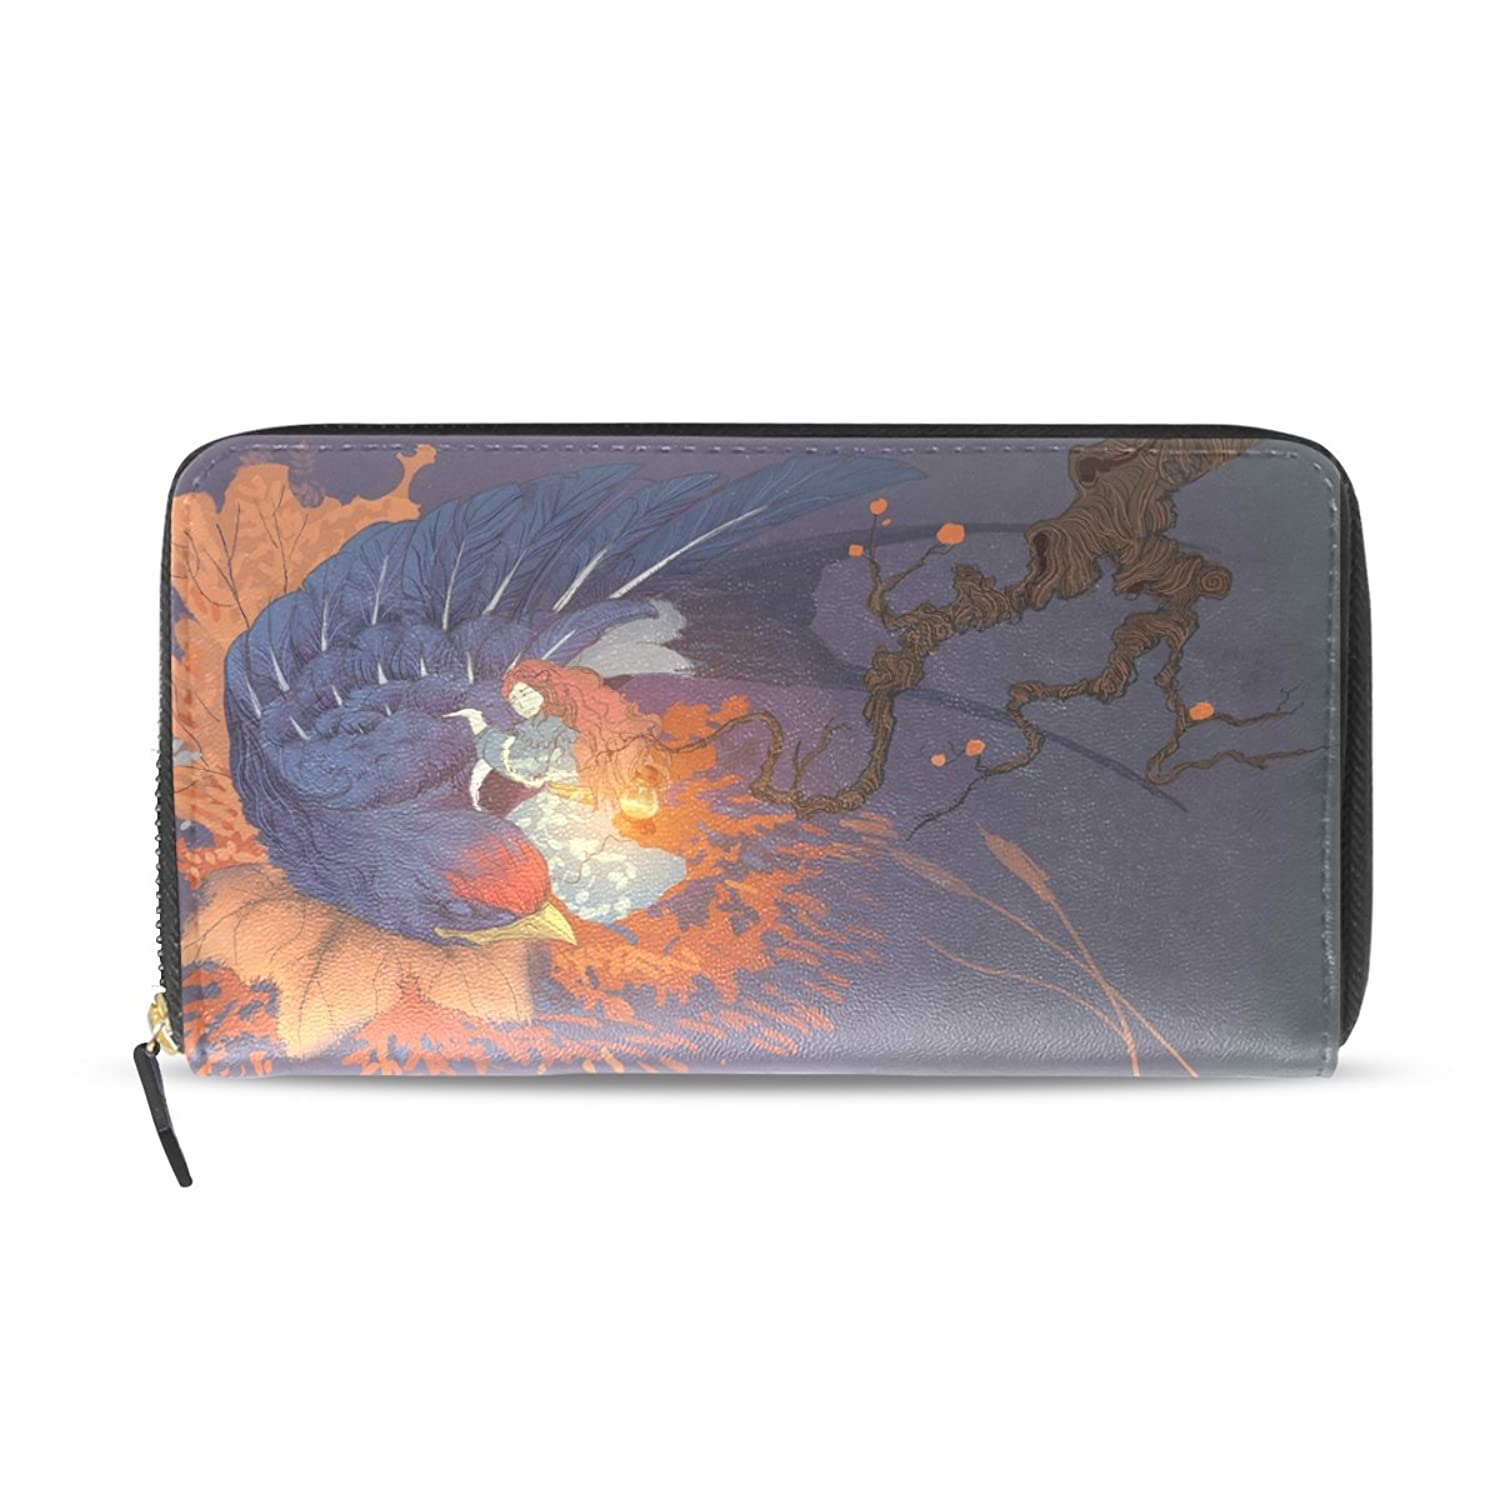 acbc8dc154b5 SCDS Girl And Bird Ladies Wallet Long Purse Hand Bag Notecase 70%OFF ...